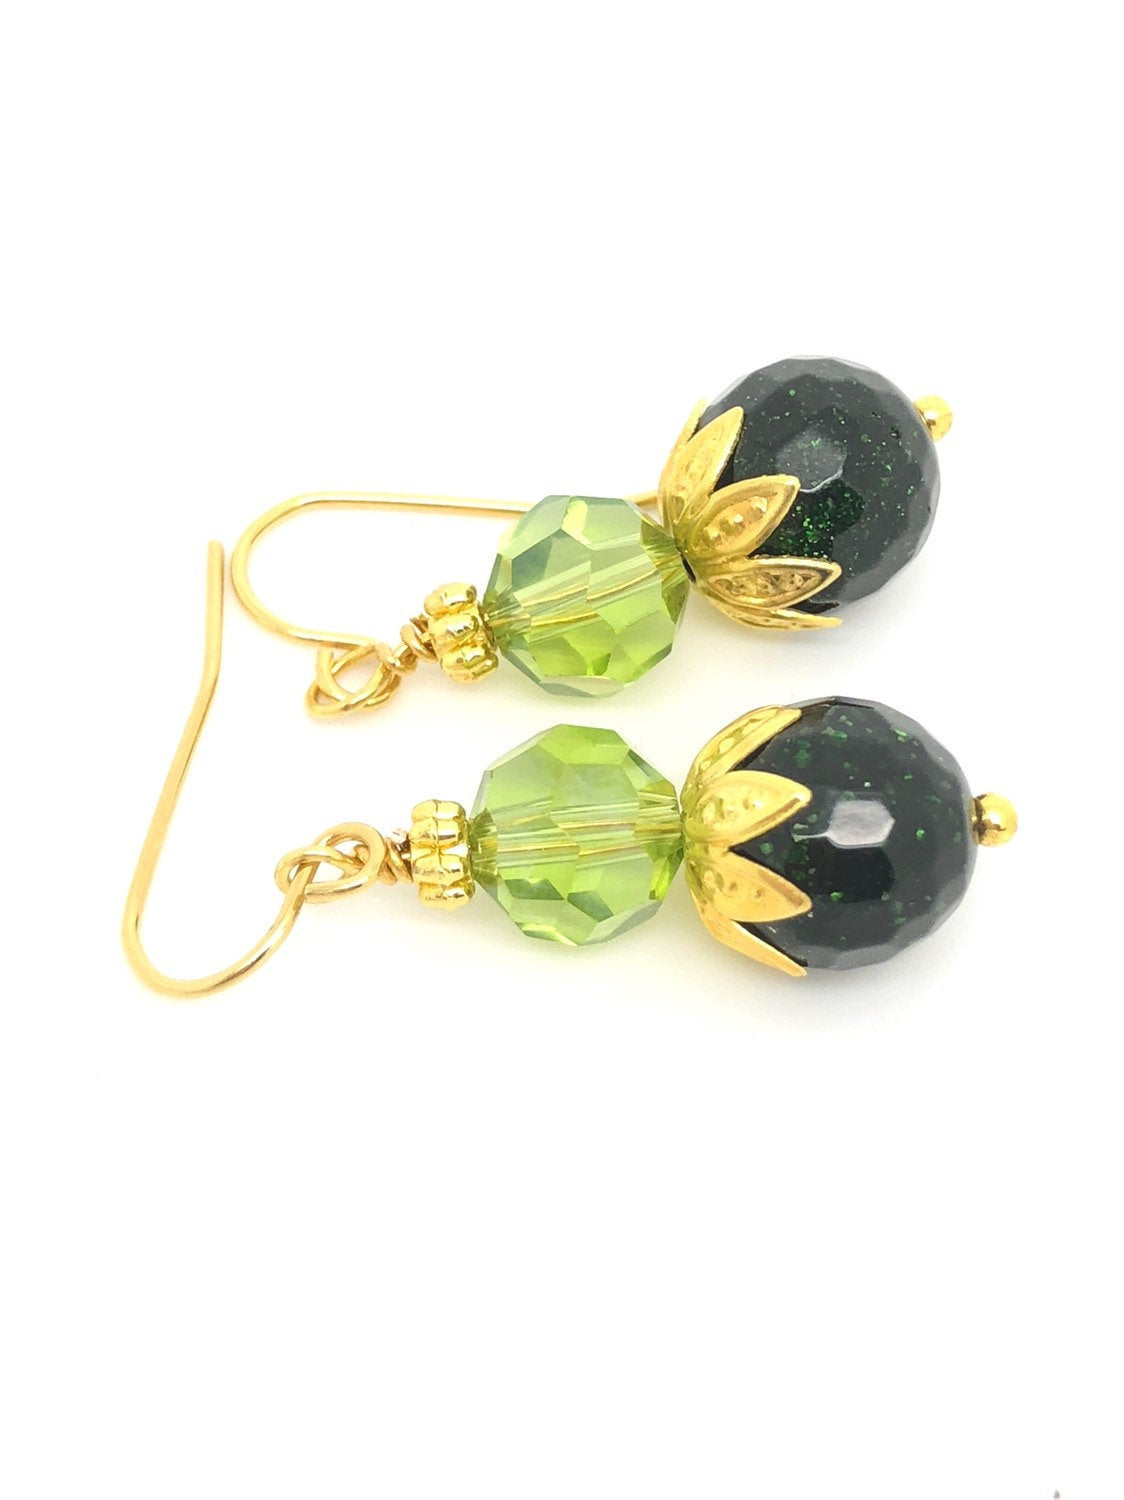 Green Sparkling Goldstone Light Green Swarovski Earrings, green goldstone earrings